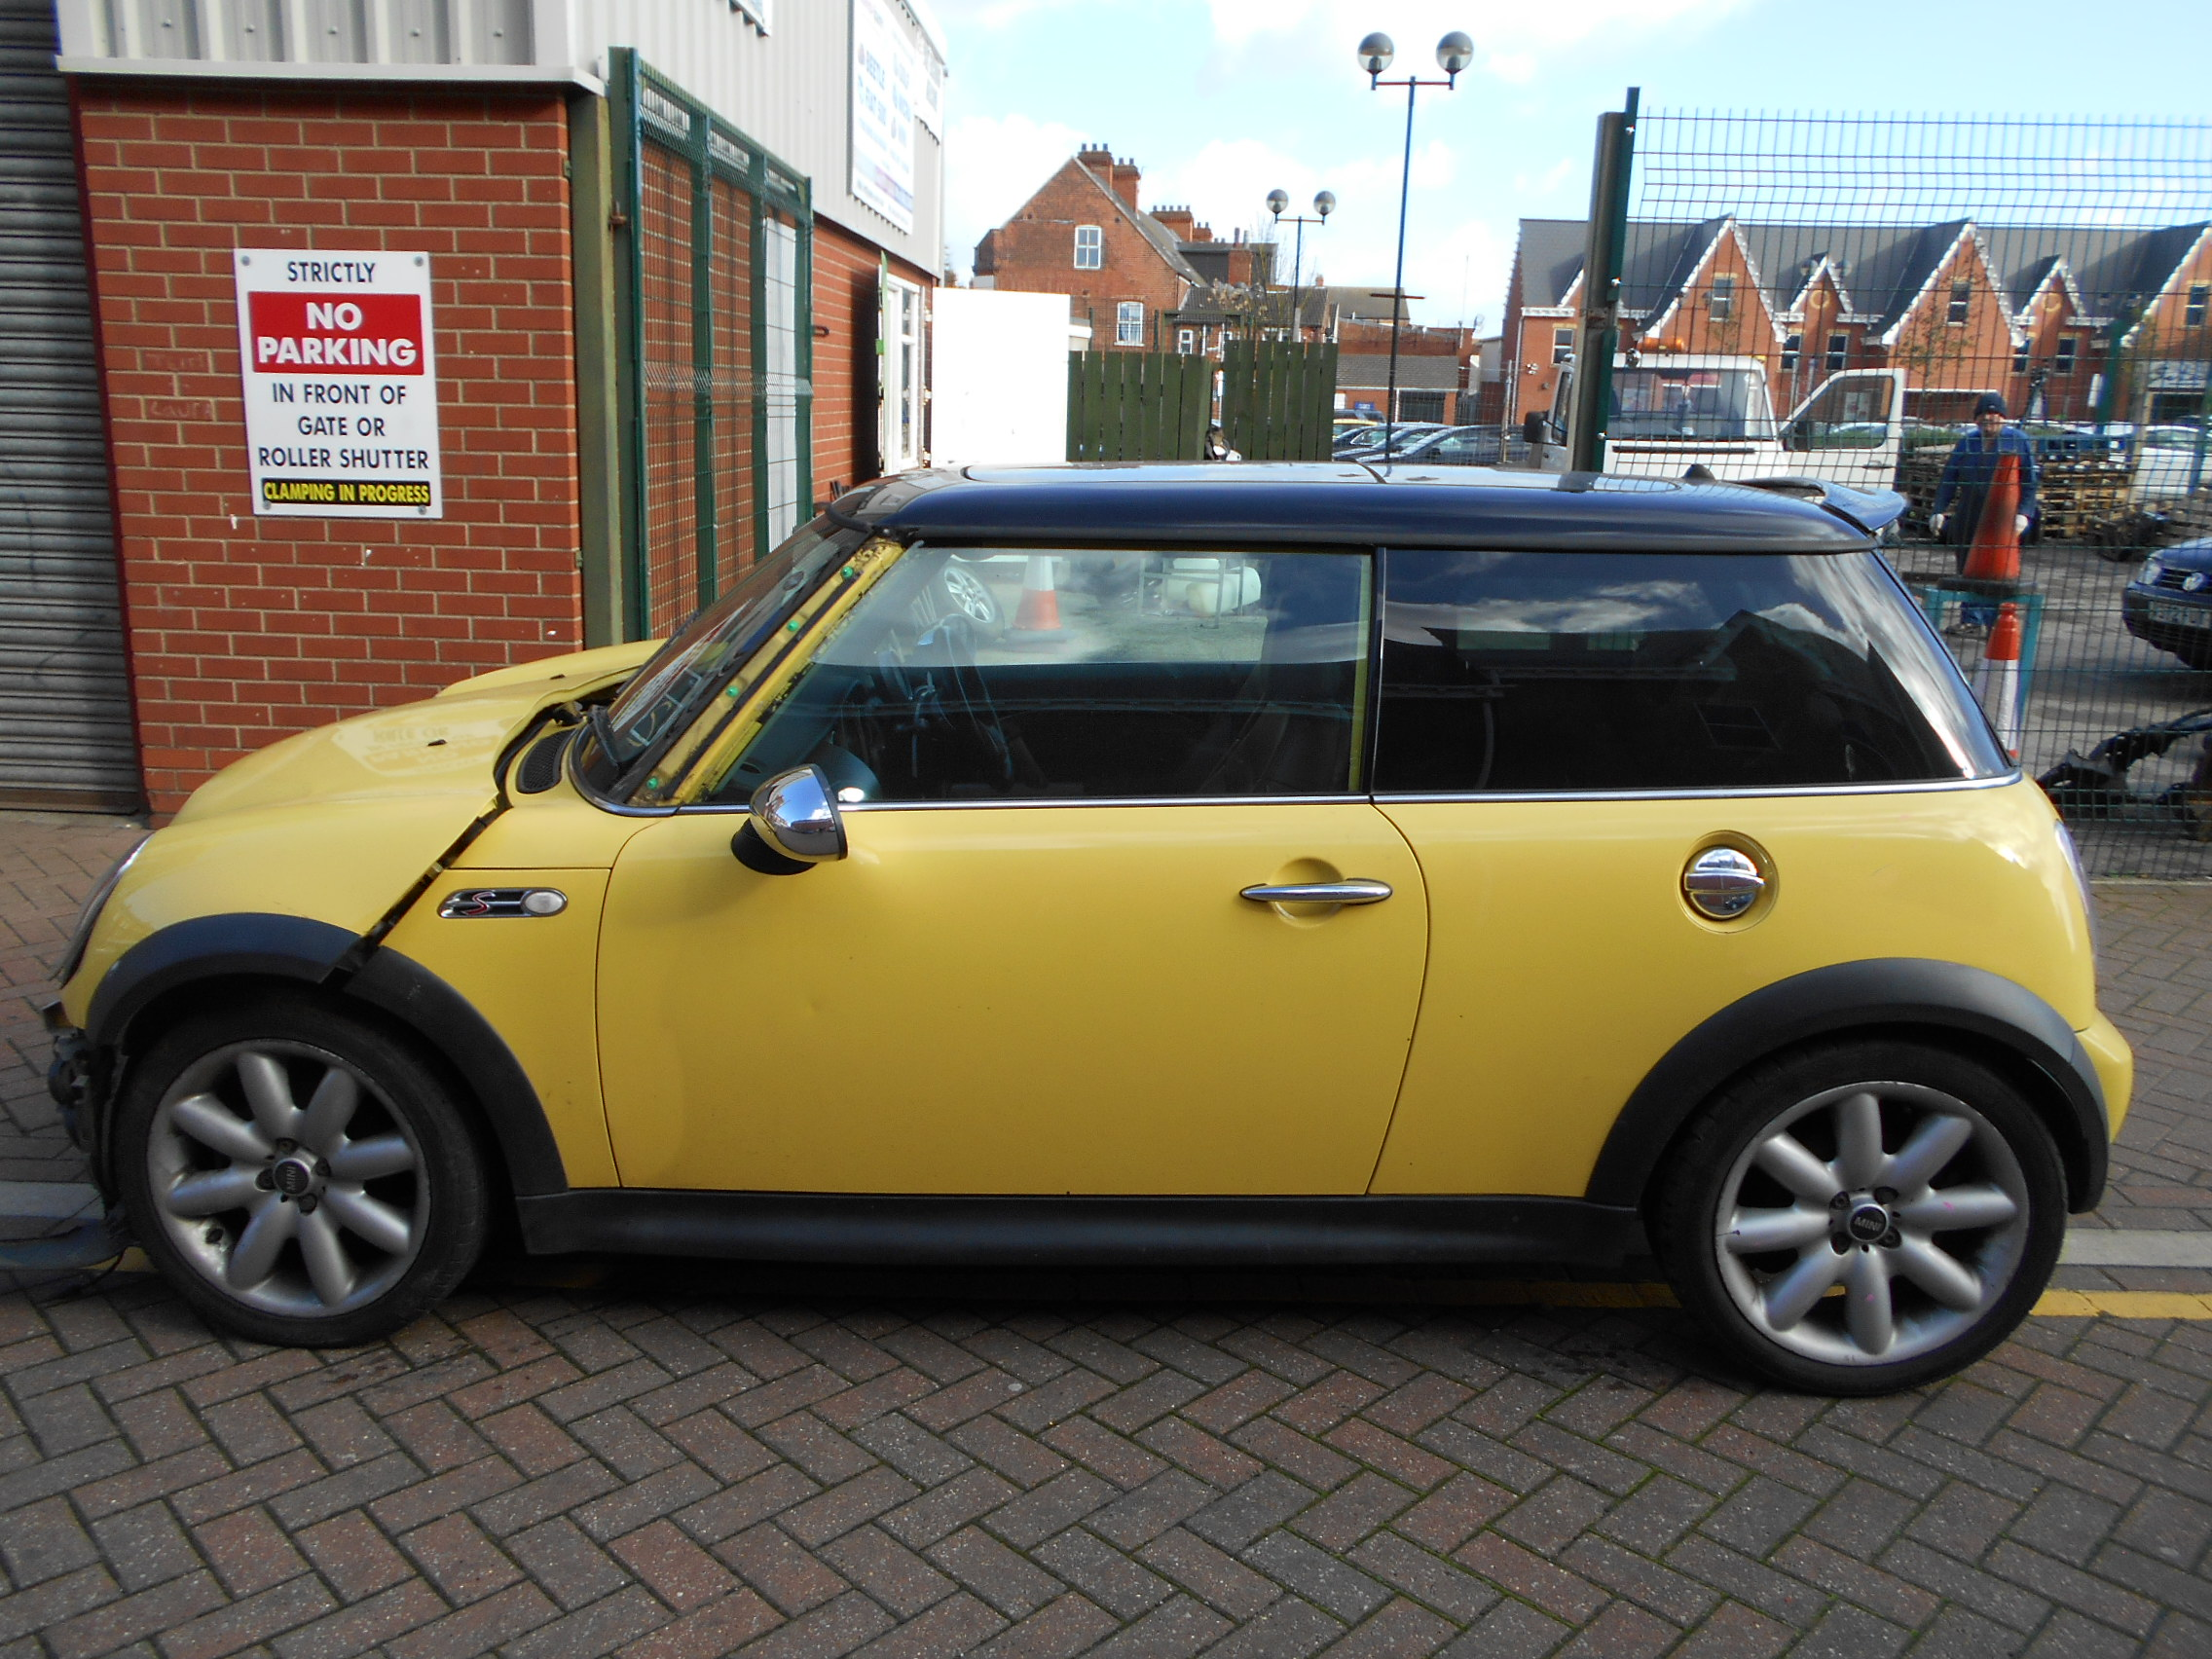 03 Liquid Yellow 1.6 BMW Mini Cooper S - 2